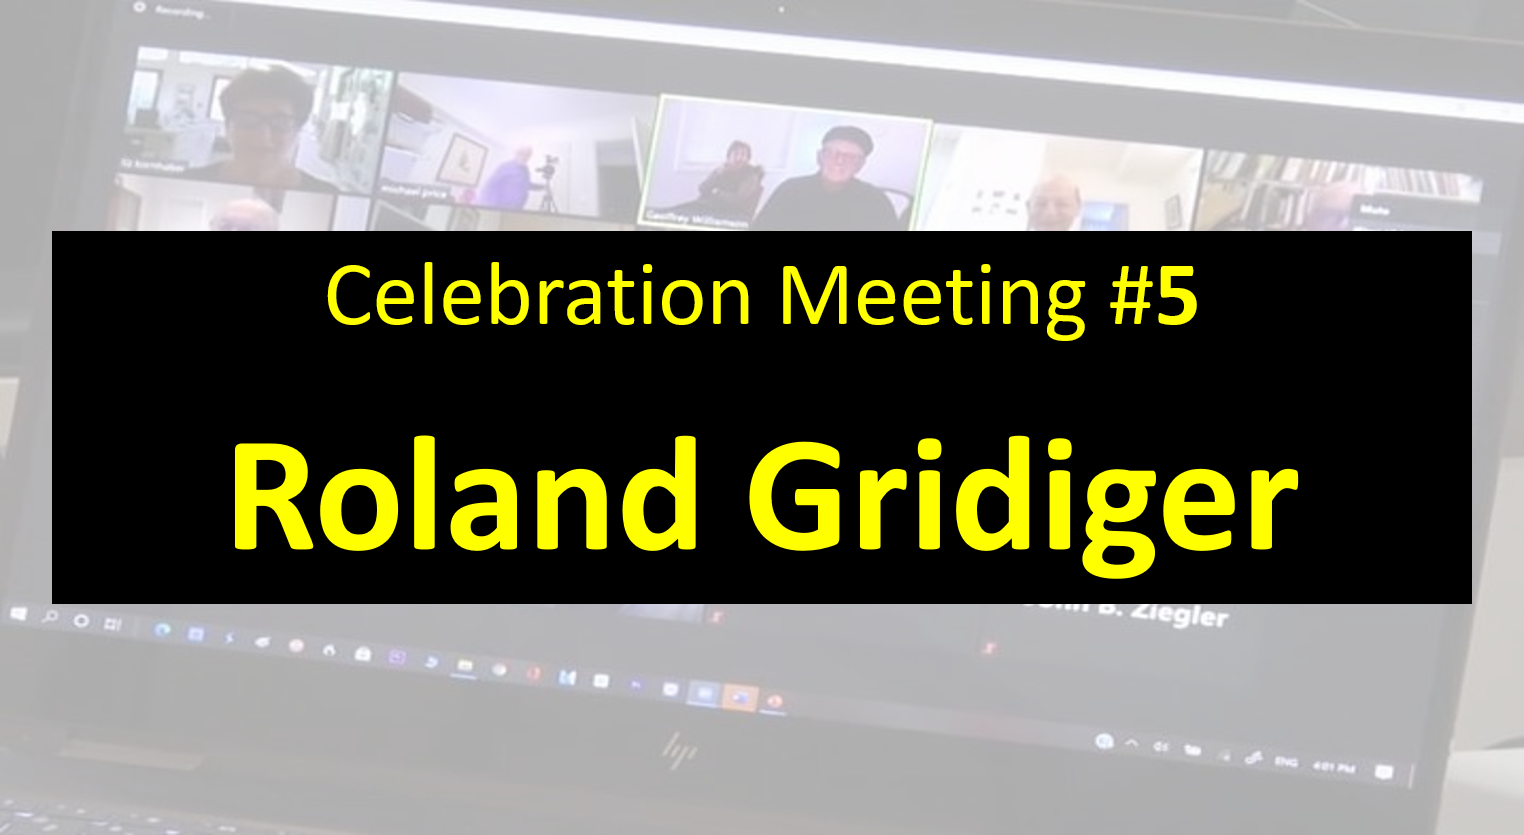 Celebration Meeting - #5 Roland Gridiger